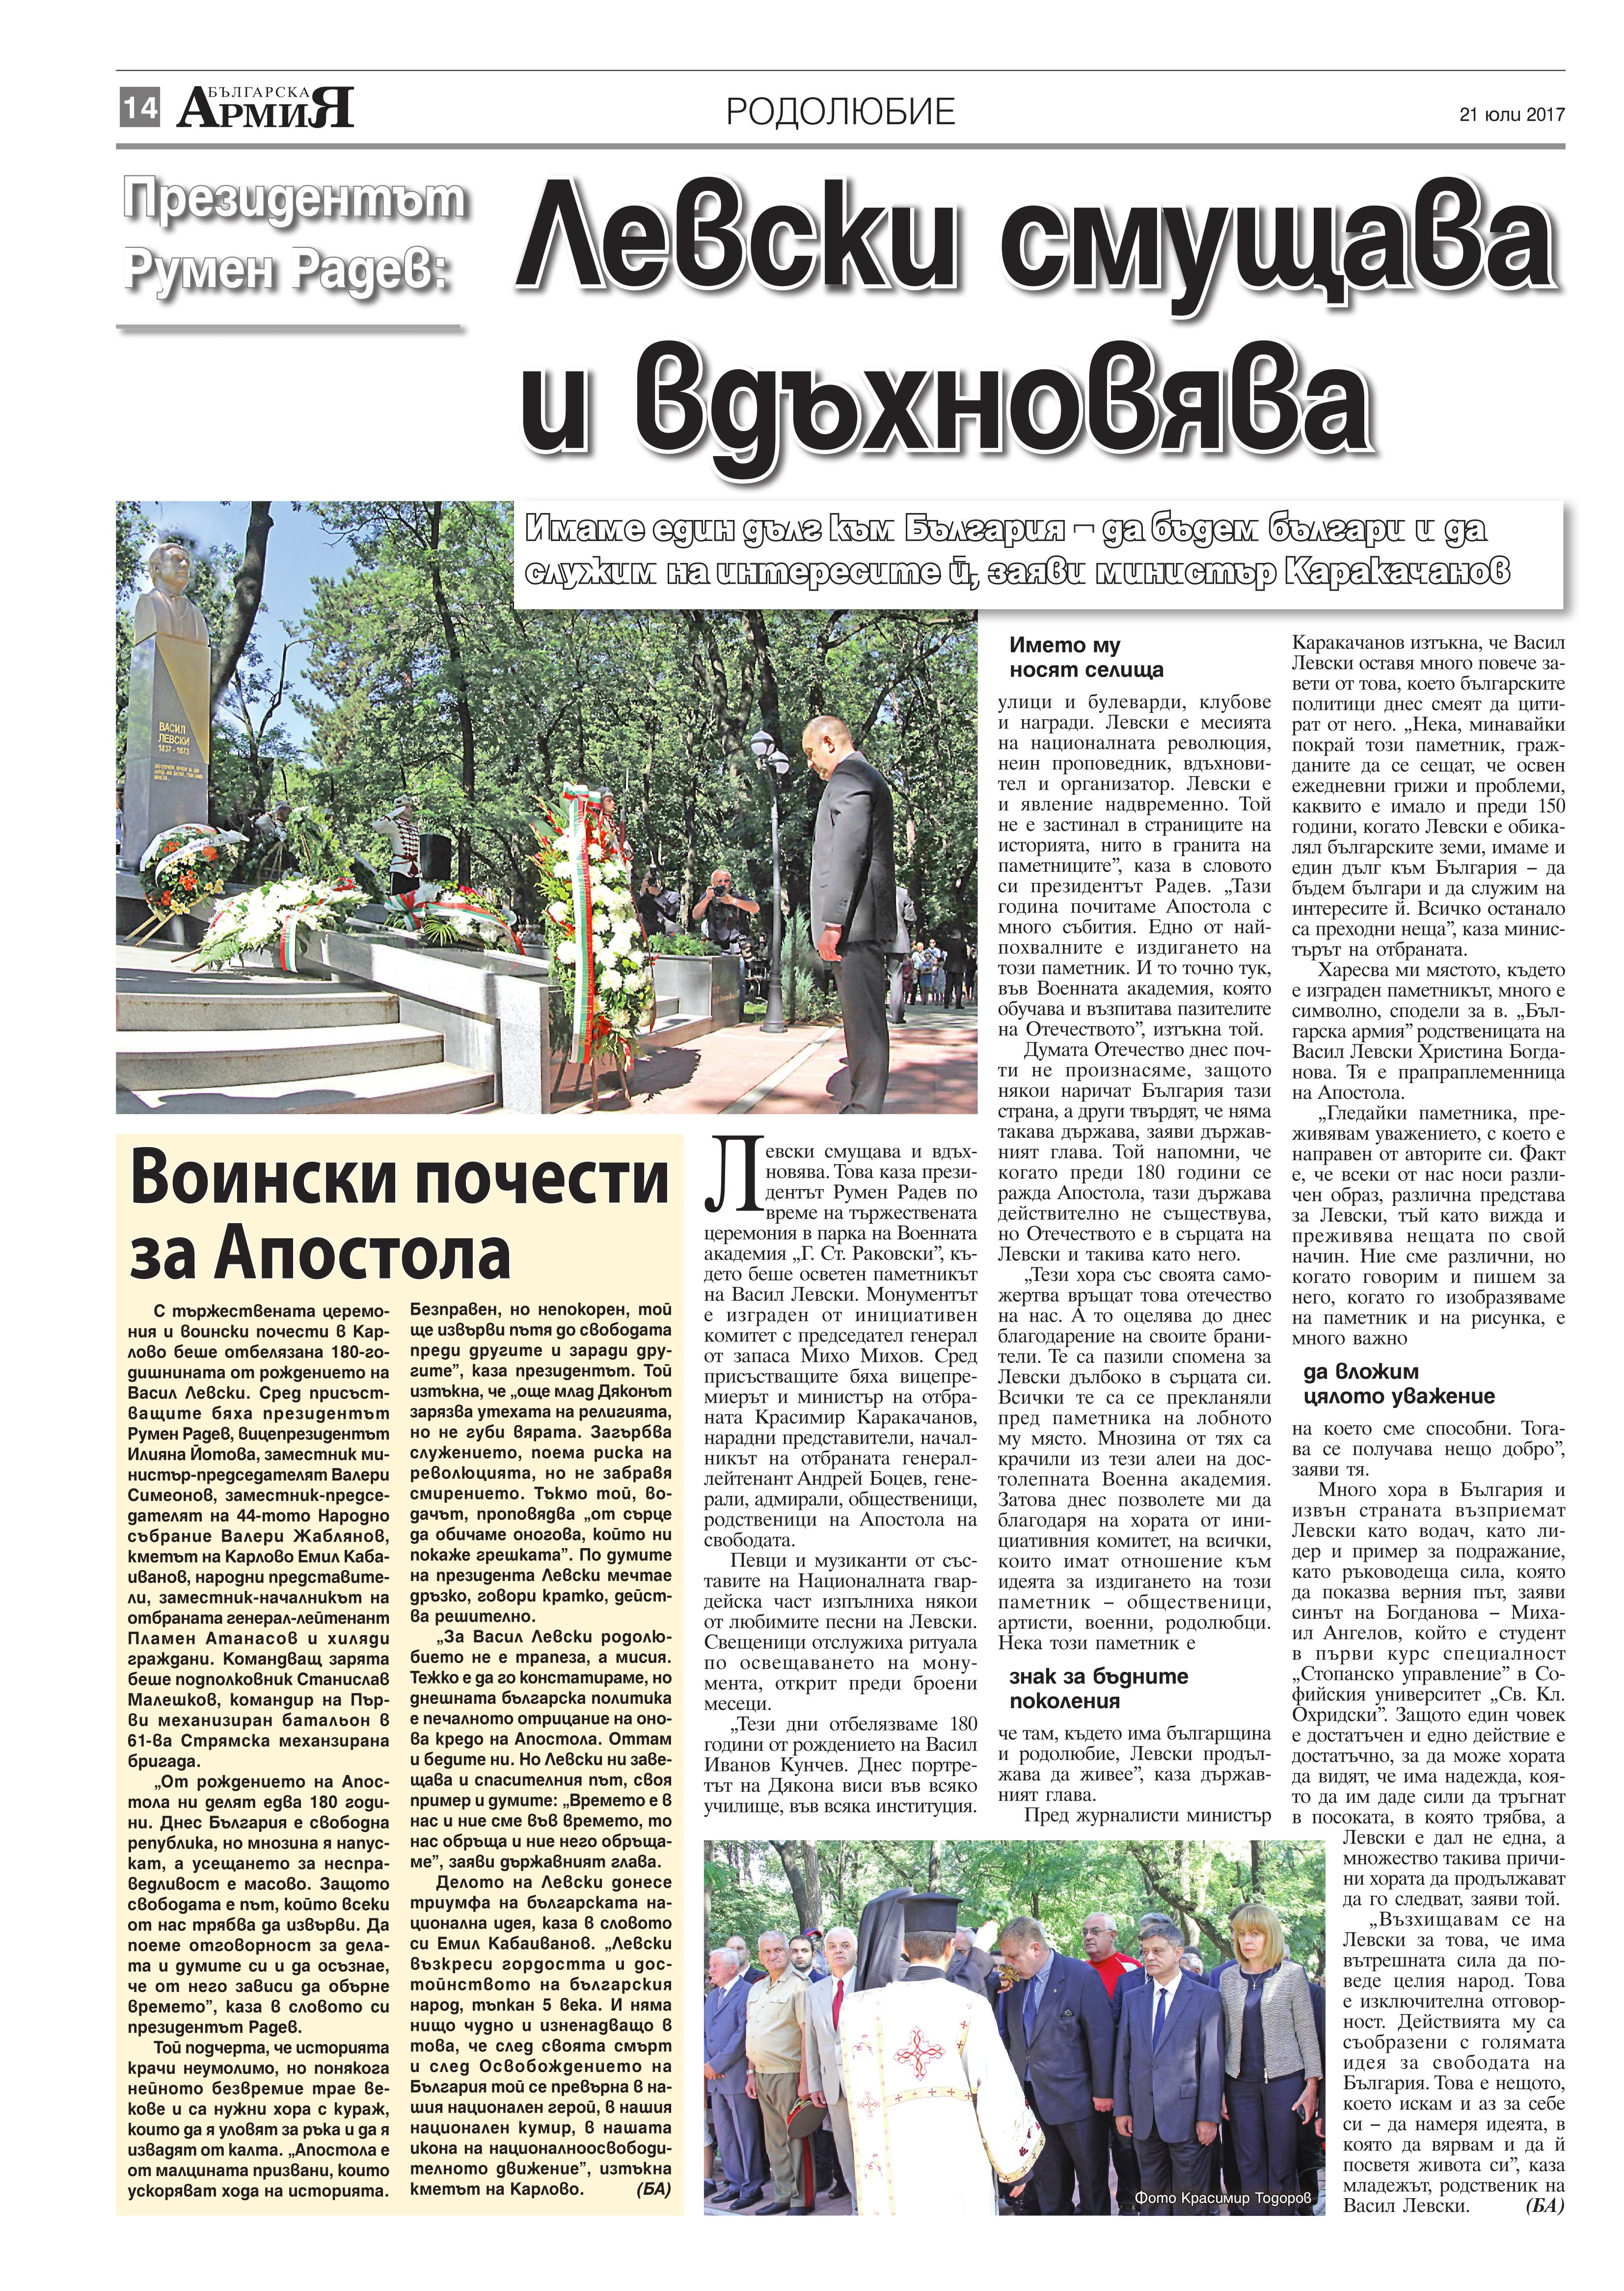 https://www.armymedia.bg/wp-content/uploads/2015/06/14.page1_-26.jpg